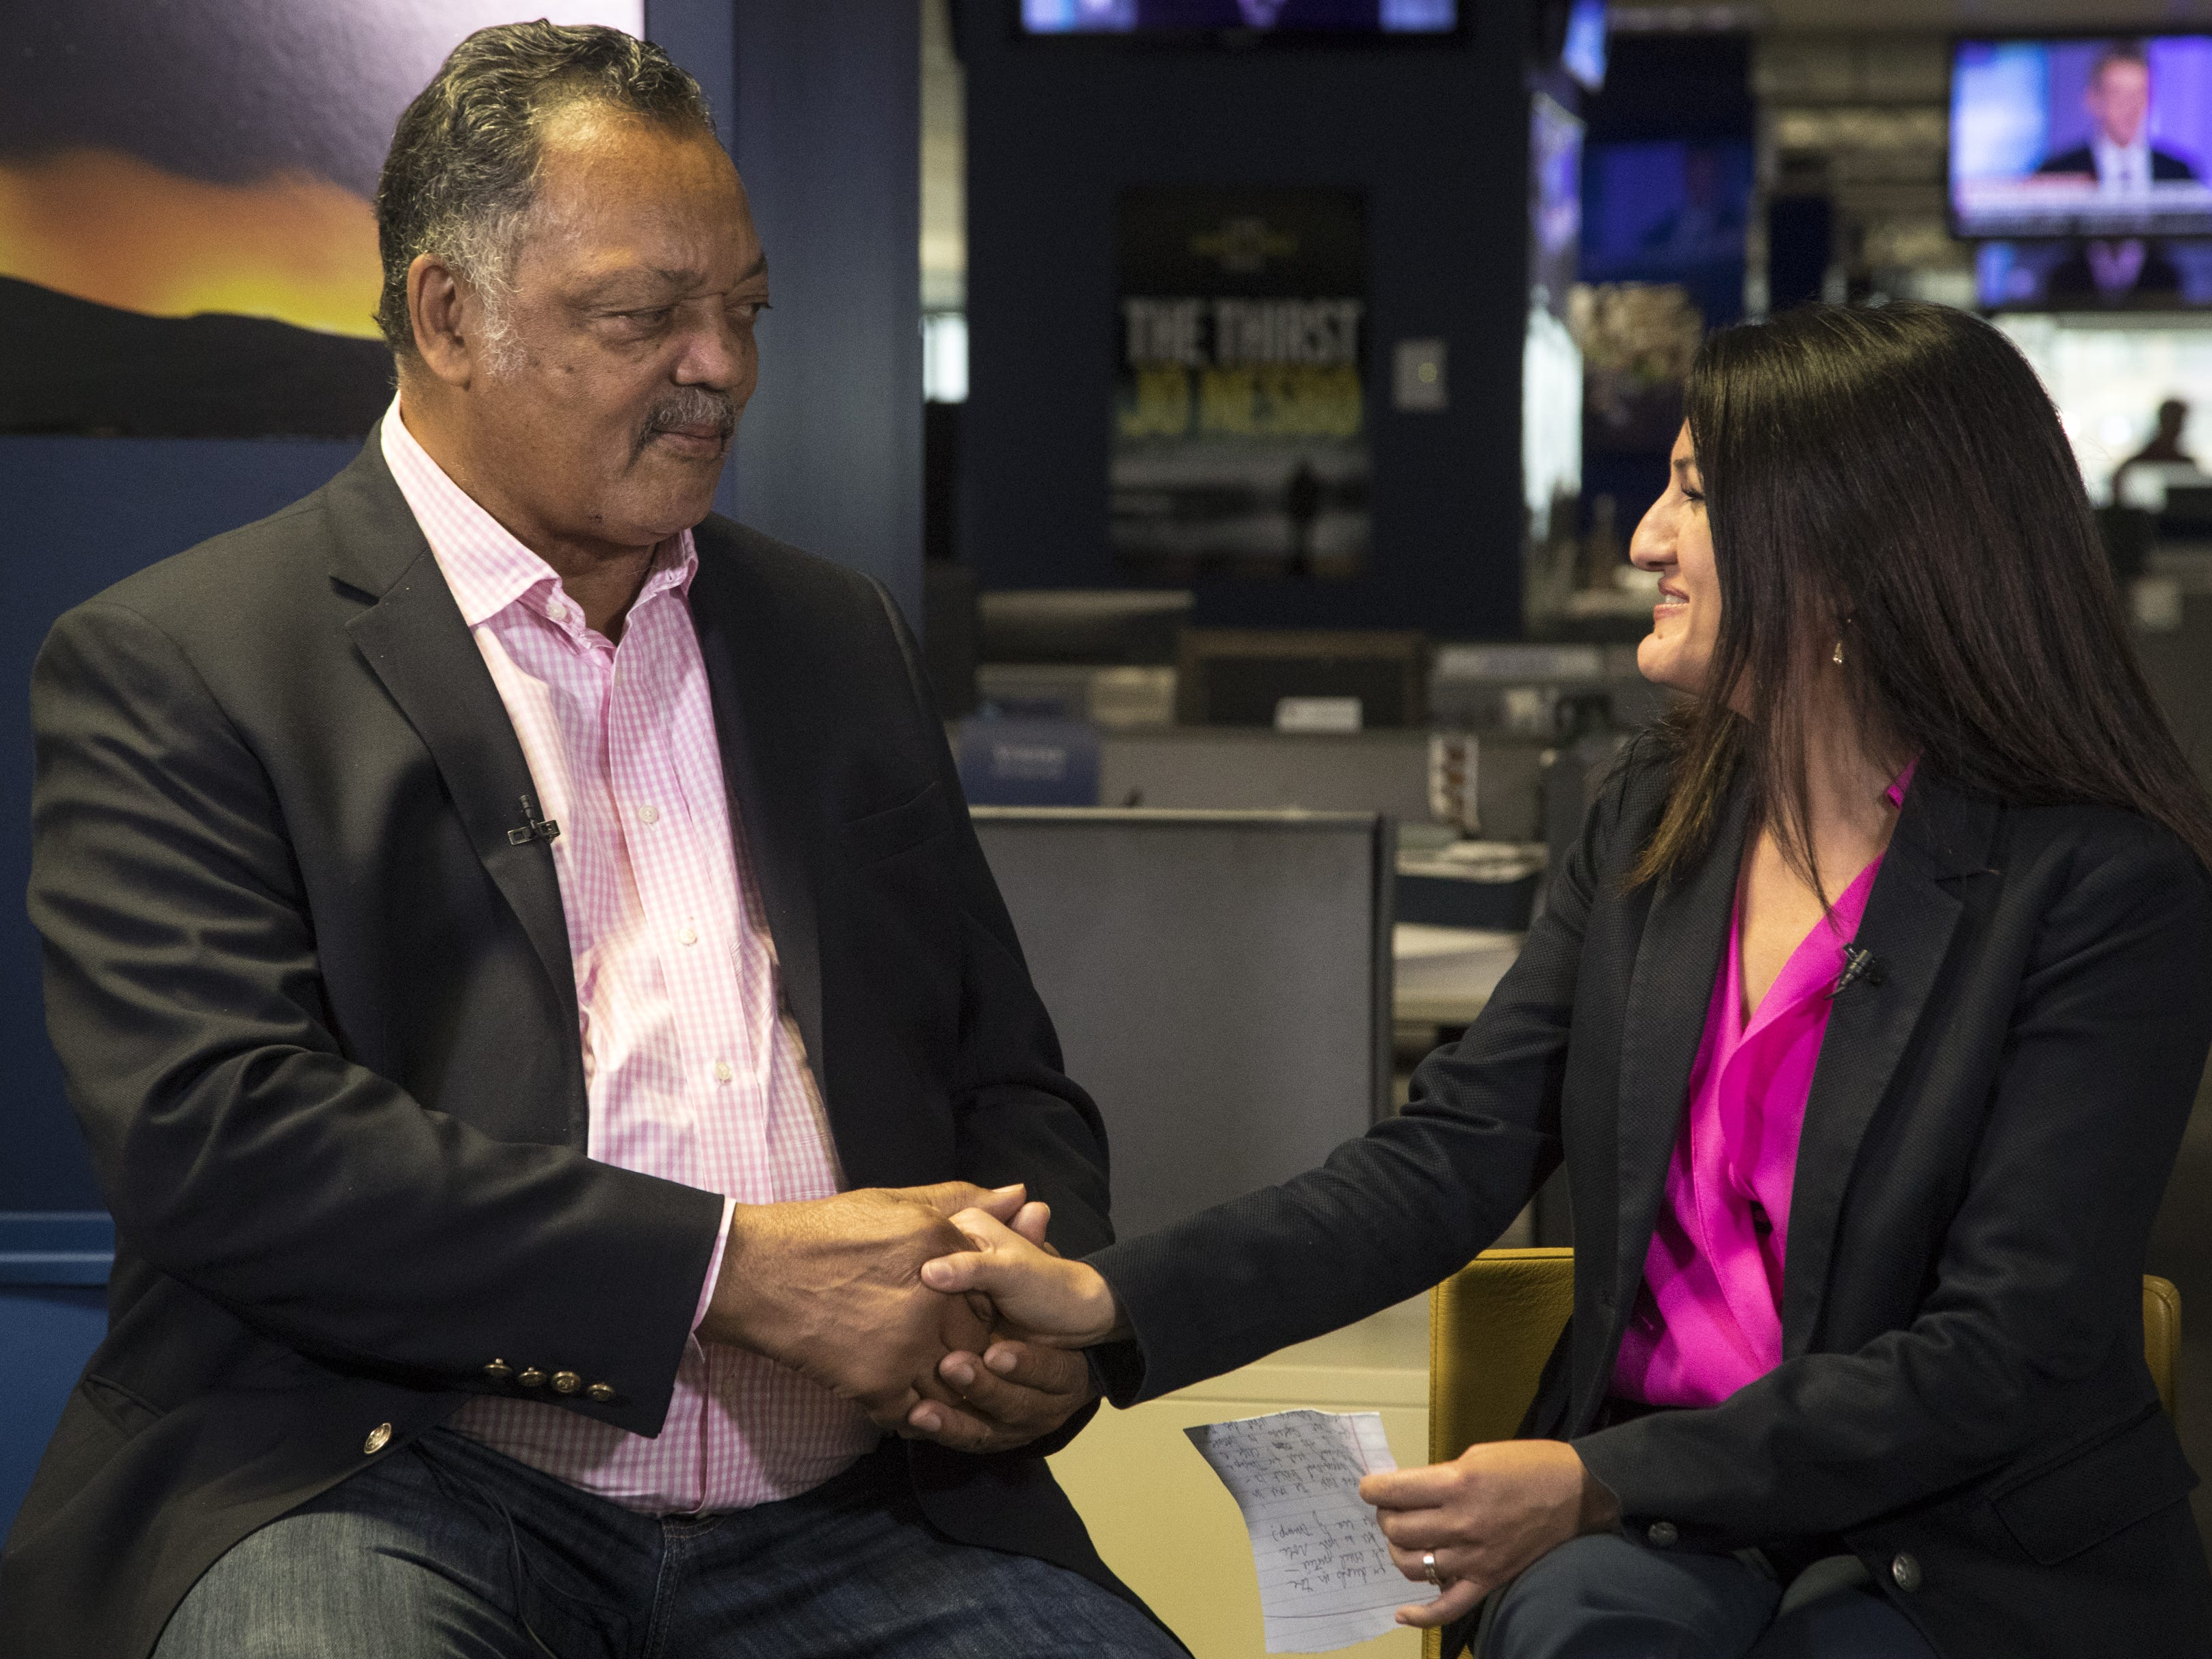 Yvonne Wingett Sanchez (right) greets Jesse Jackson during an interview on Aug. 8, 2018, at The Arizona Republic.